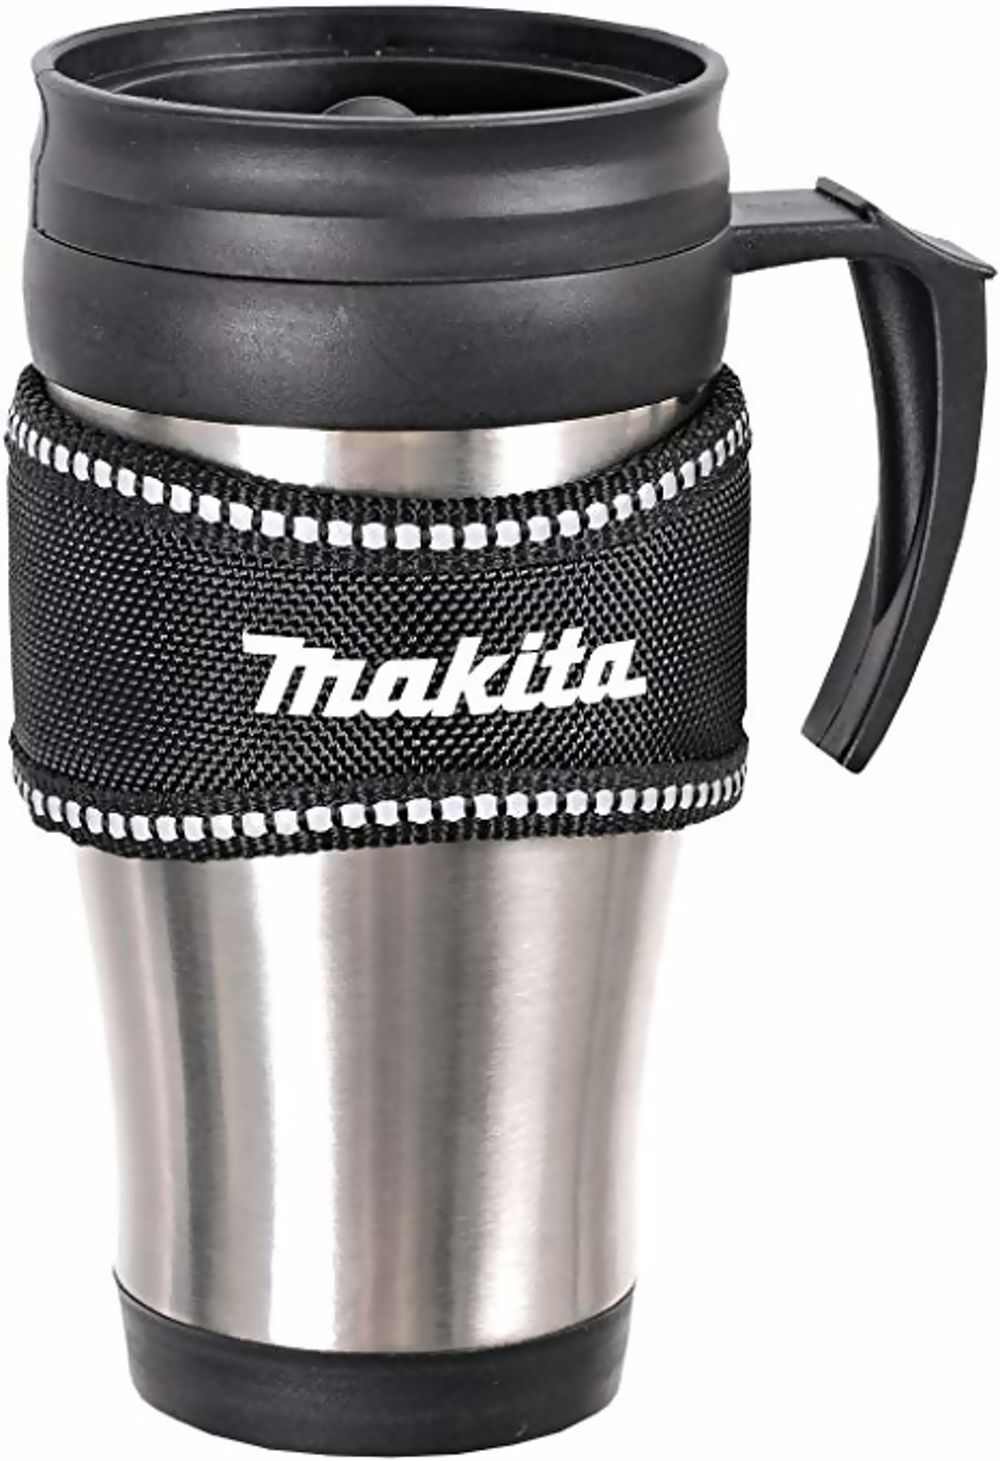 Makita Kee Pads Light Duty C/W Stainless Steel Insulated Mugs  Ref P-79184 / P-72198